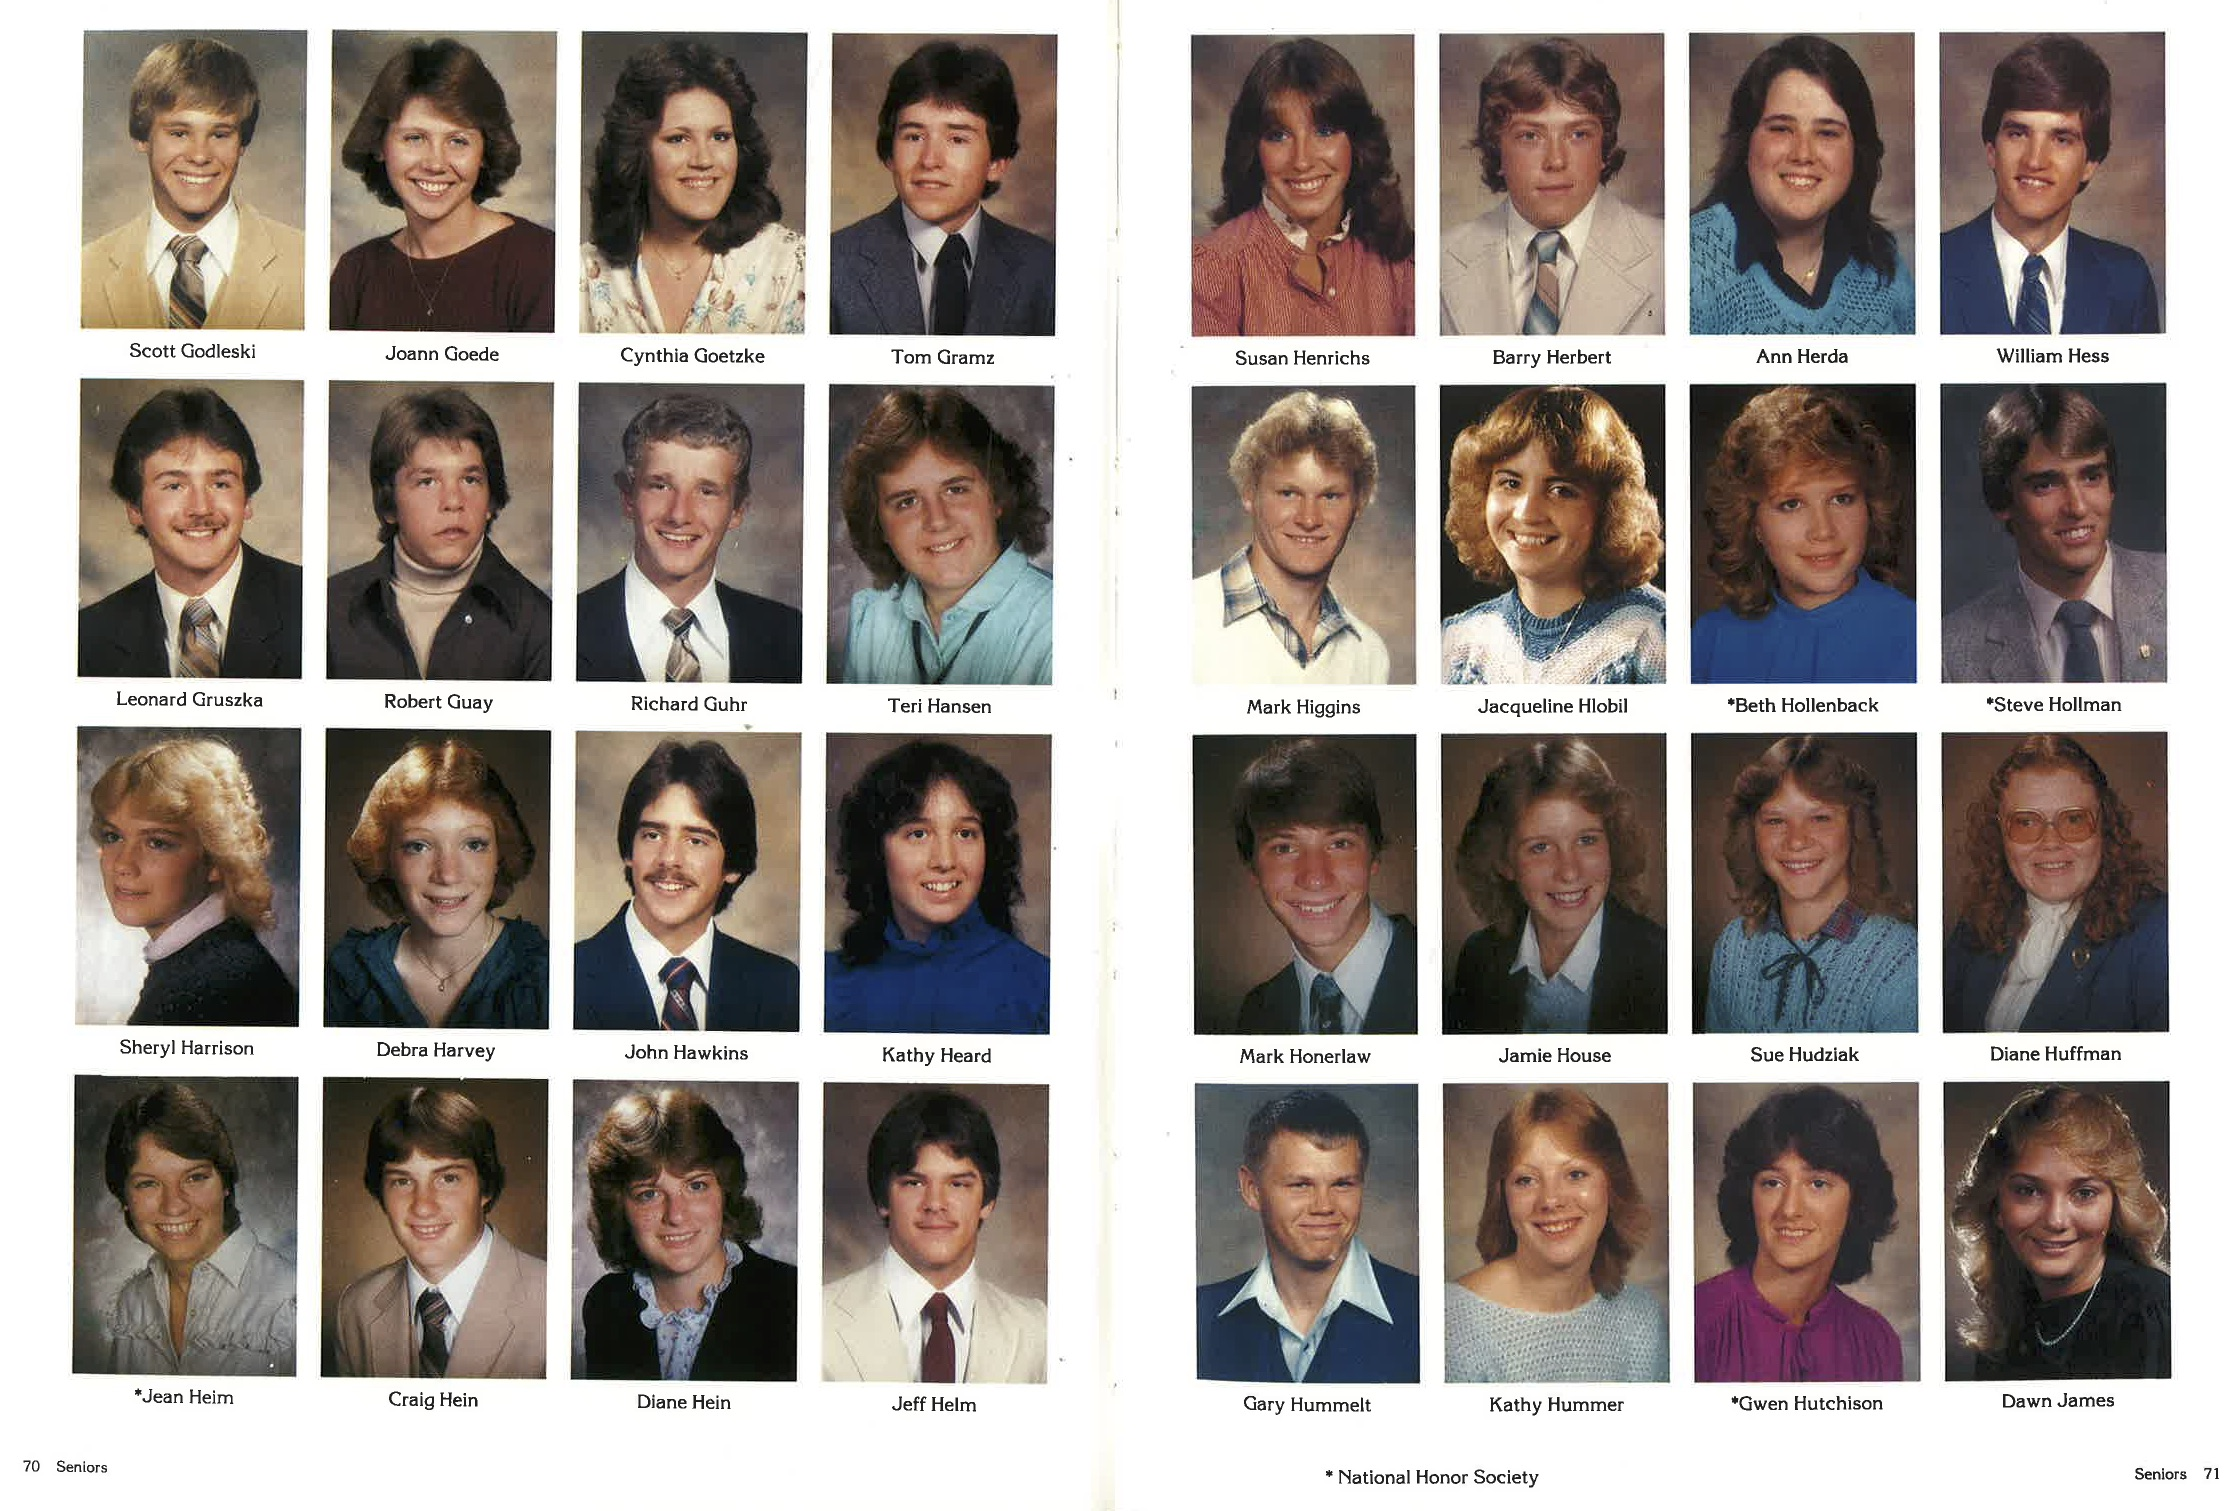 1983_Yearbook_36.jpg